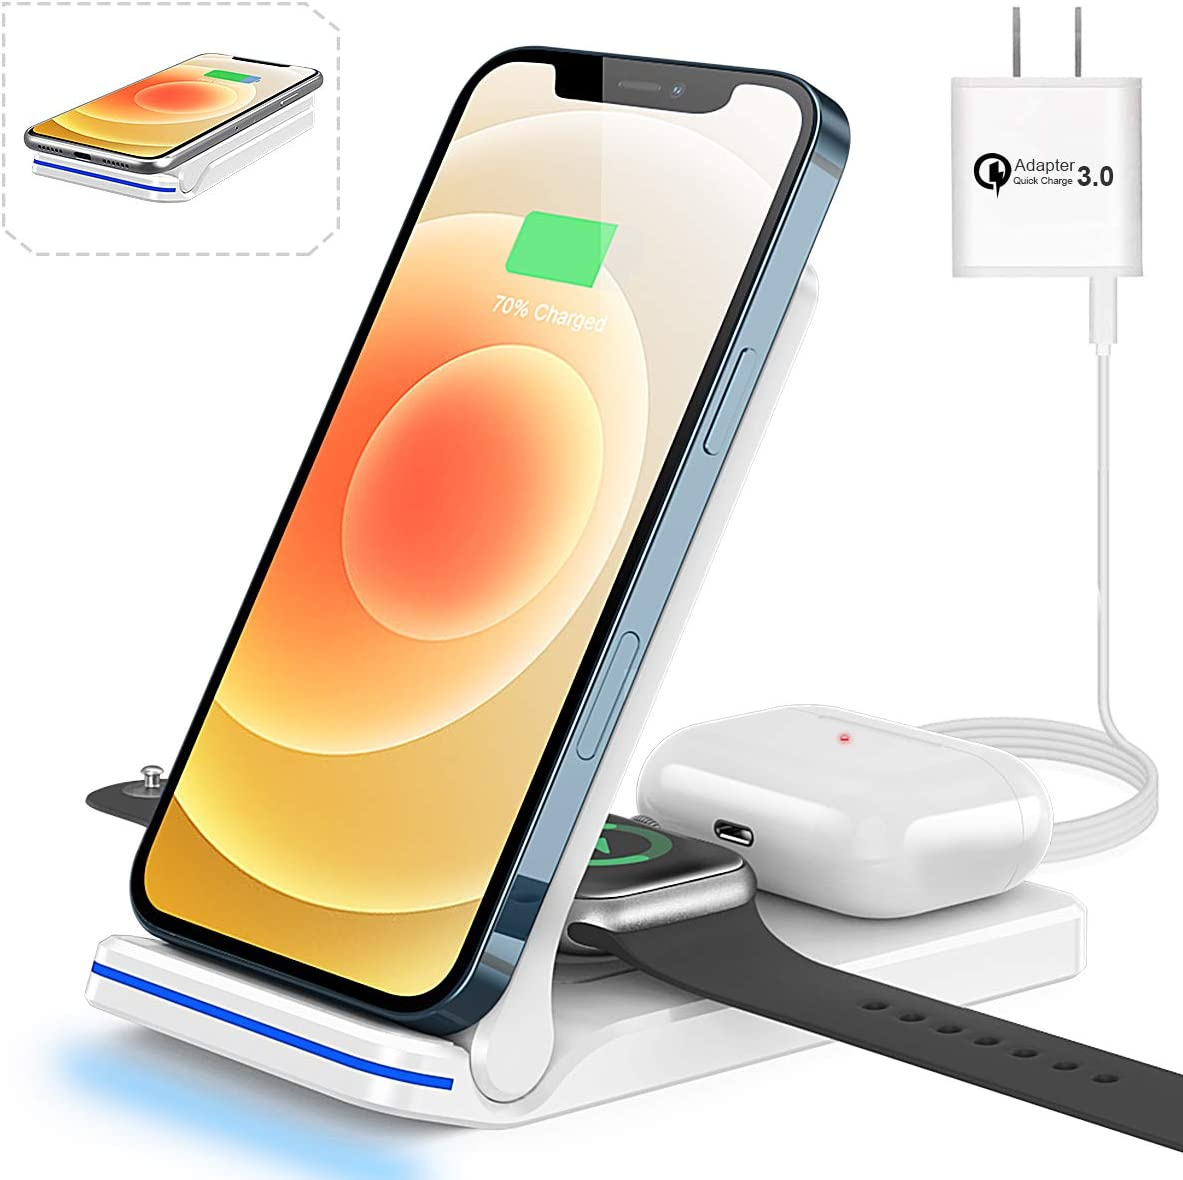 Wireless Charging Station 3 in 1 Wireless Charger for Apple iPhone Watch Airpods,Mildily Charging Dock Stand for iWatch SE/6/5/4/3/2/1,AirPods Pro/2/1, iPhone 12 11 Series/XS MAX/XR/XS/X/8/8 Plus